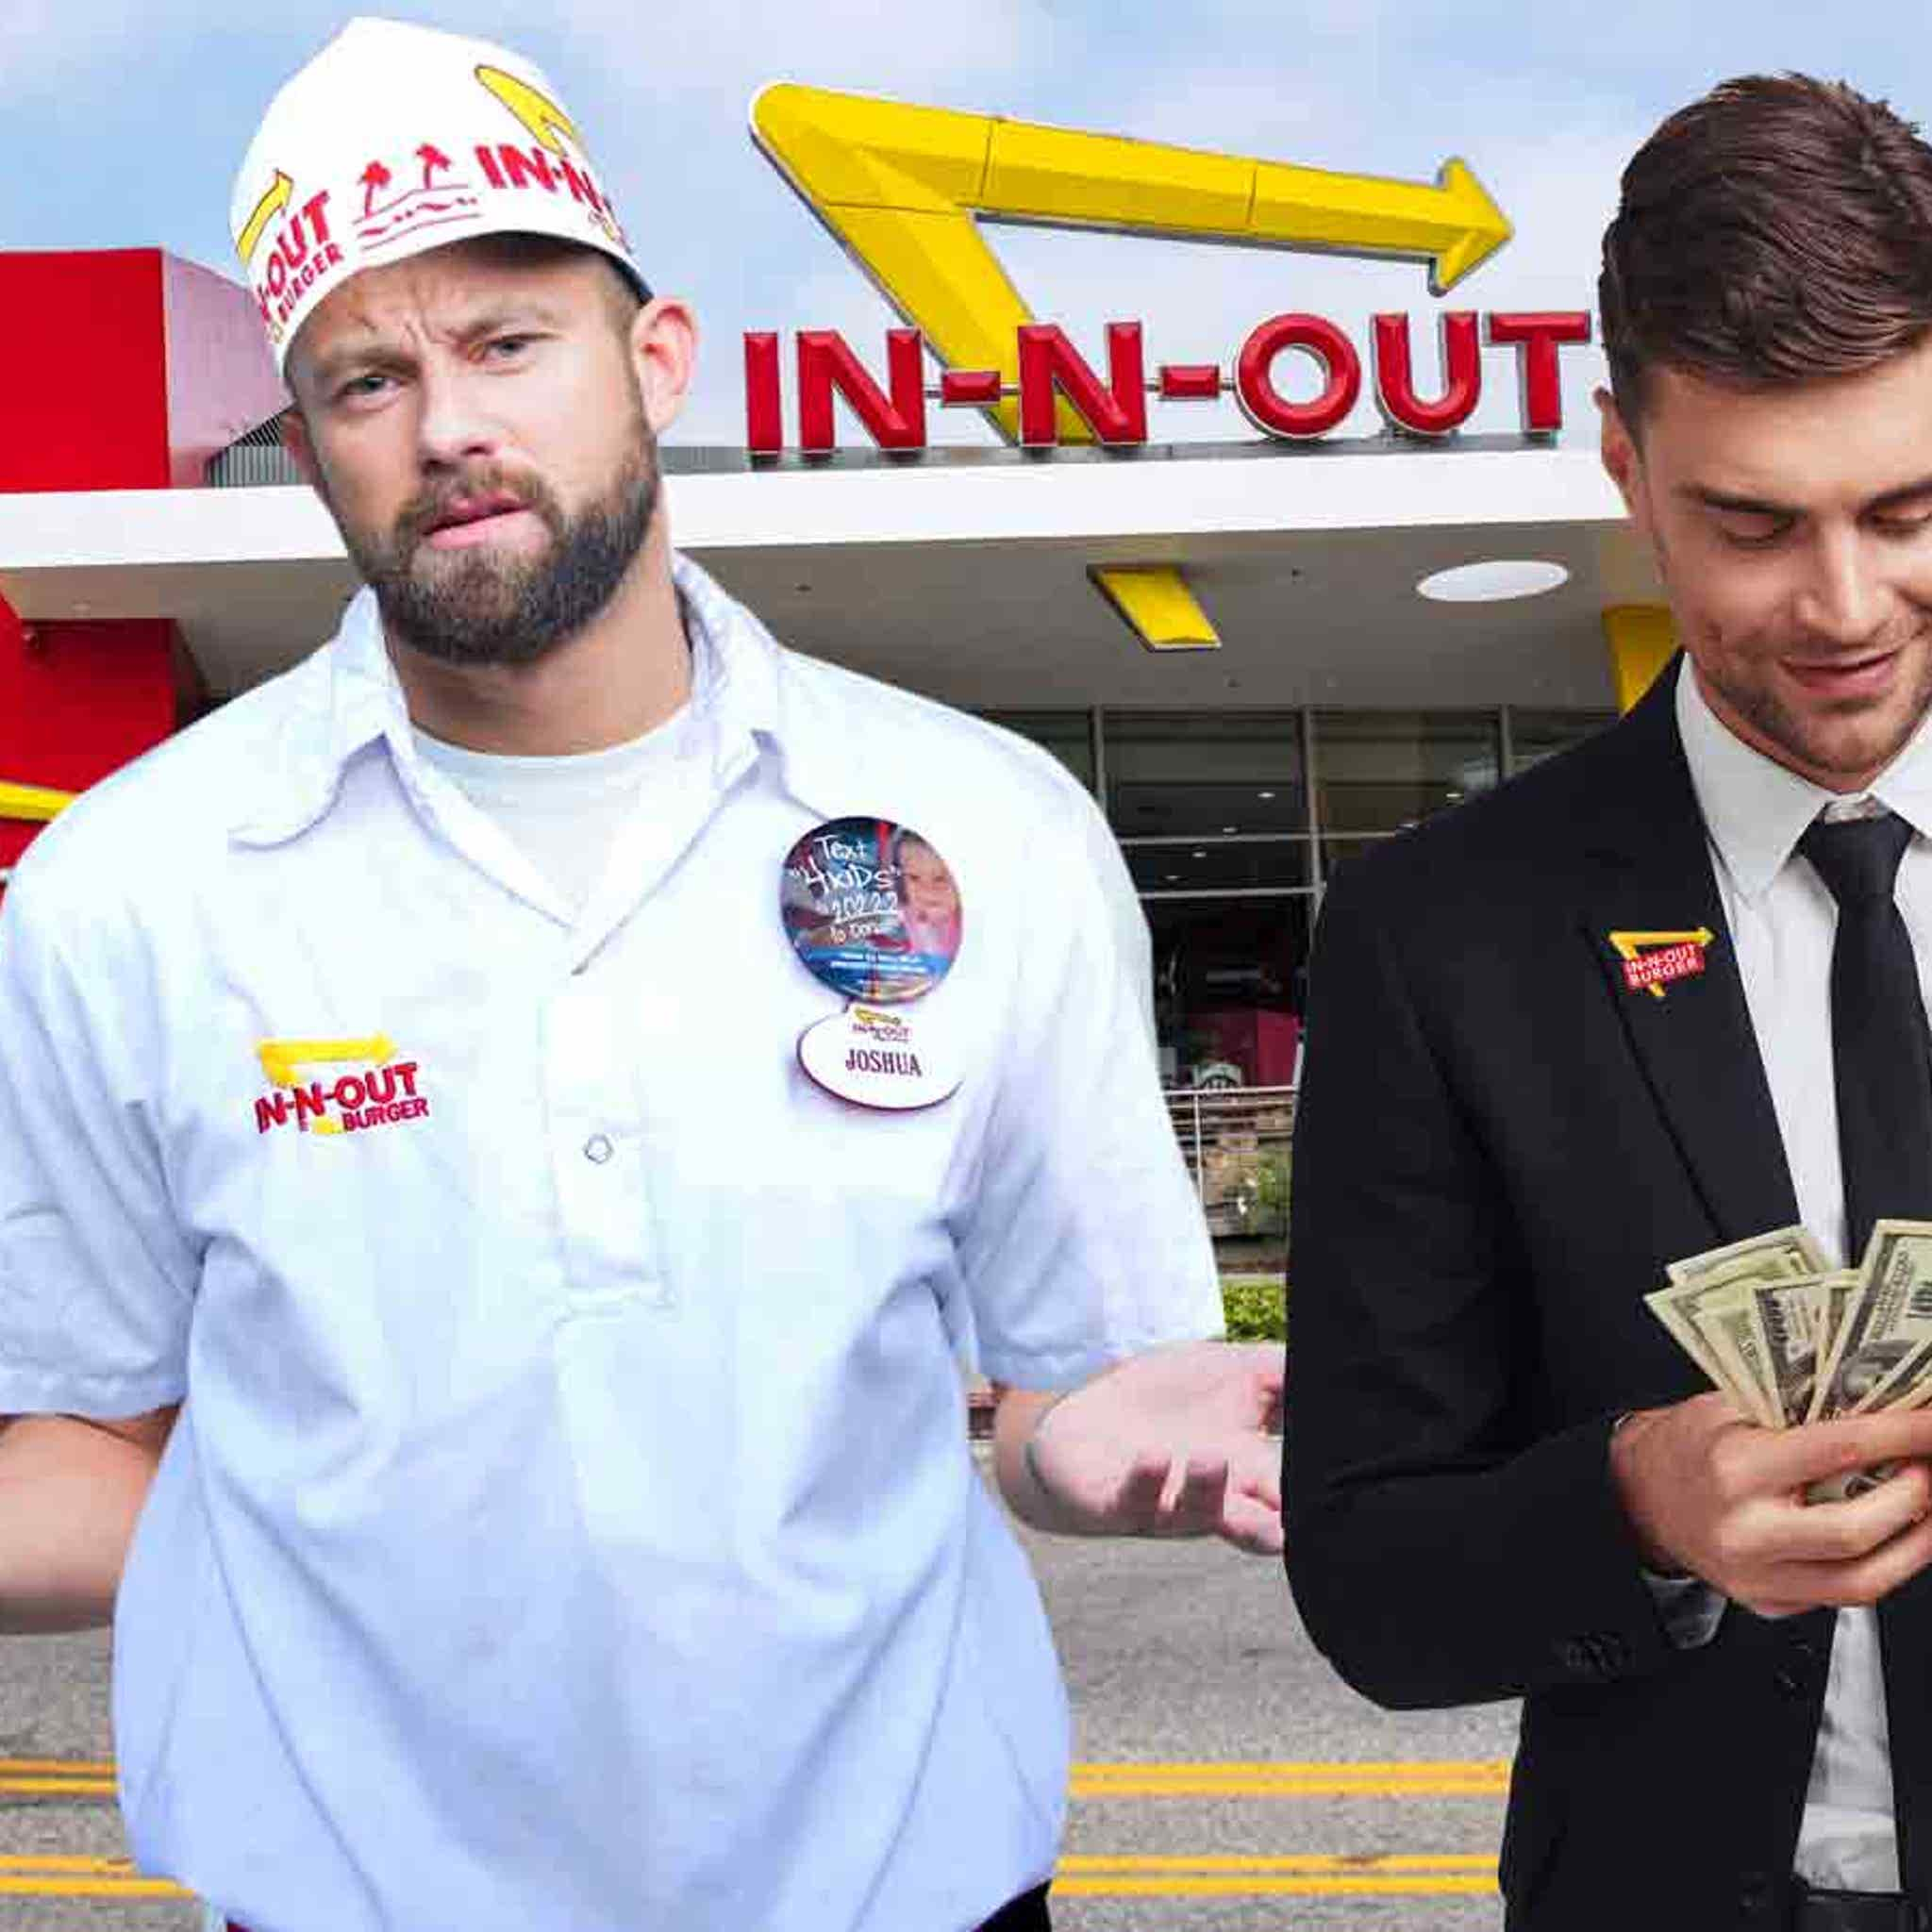 In-N-Out Employee Sues In-N-Out for Making Them Buy Uniforms